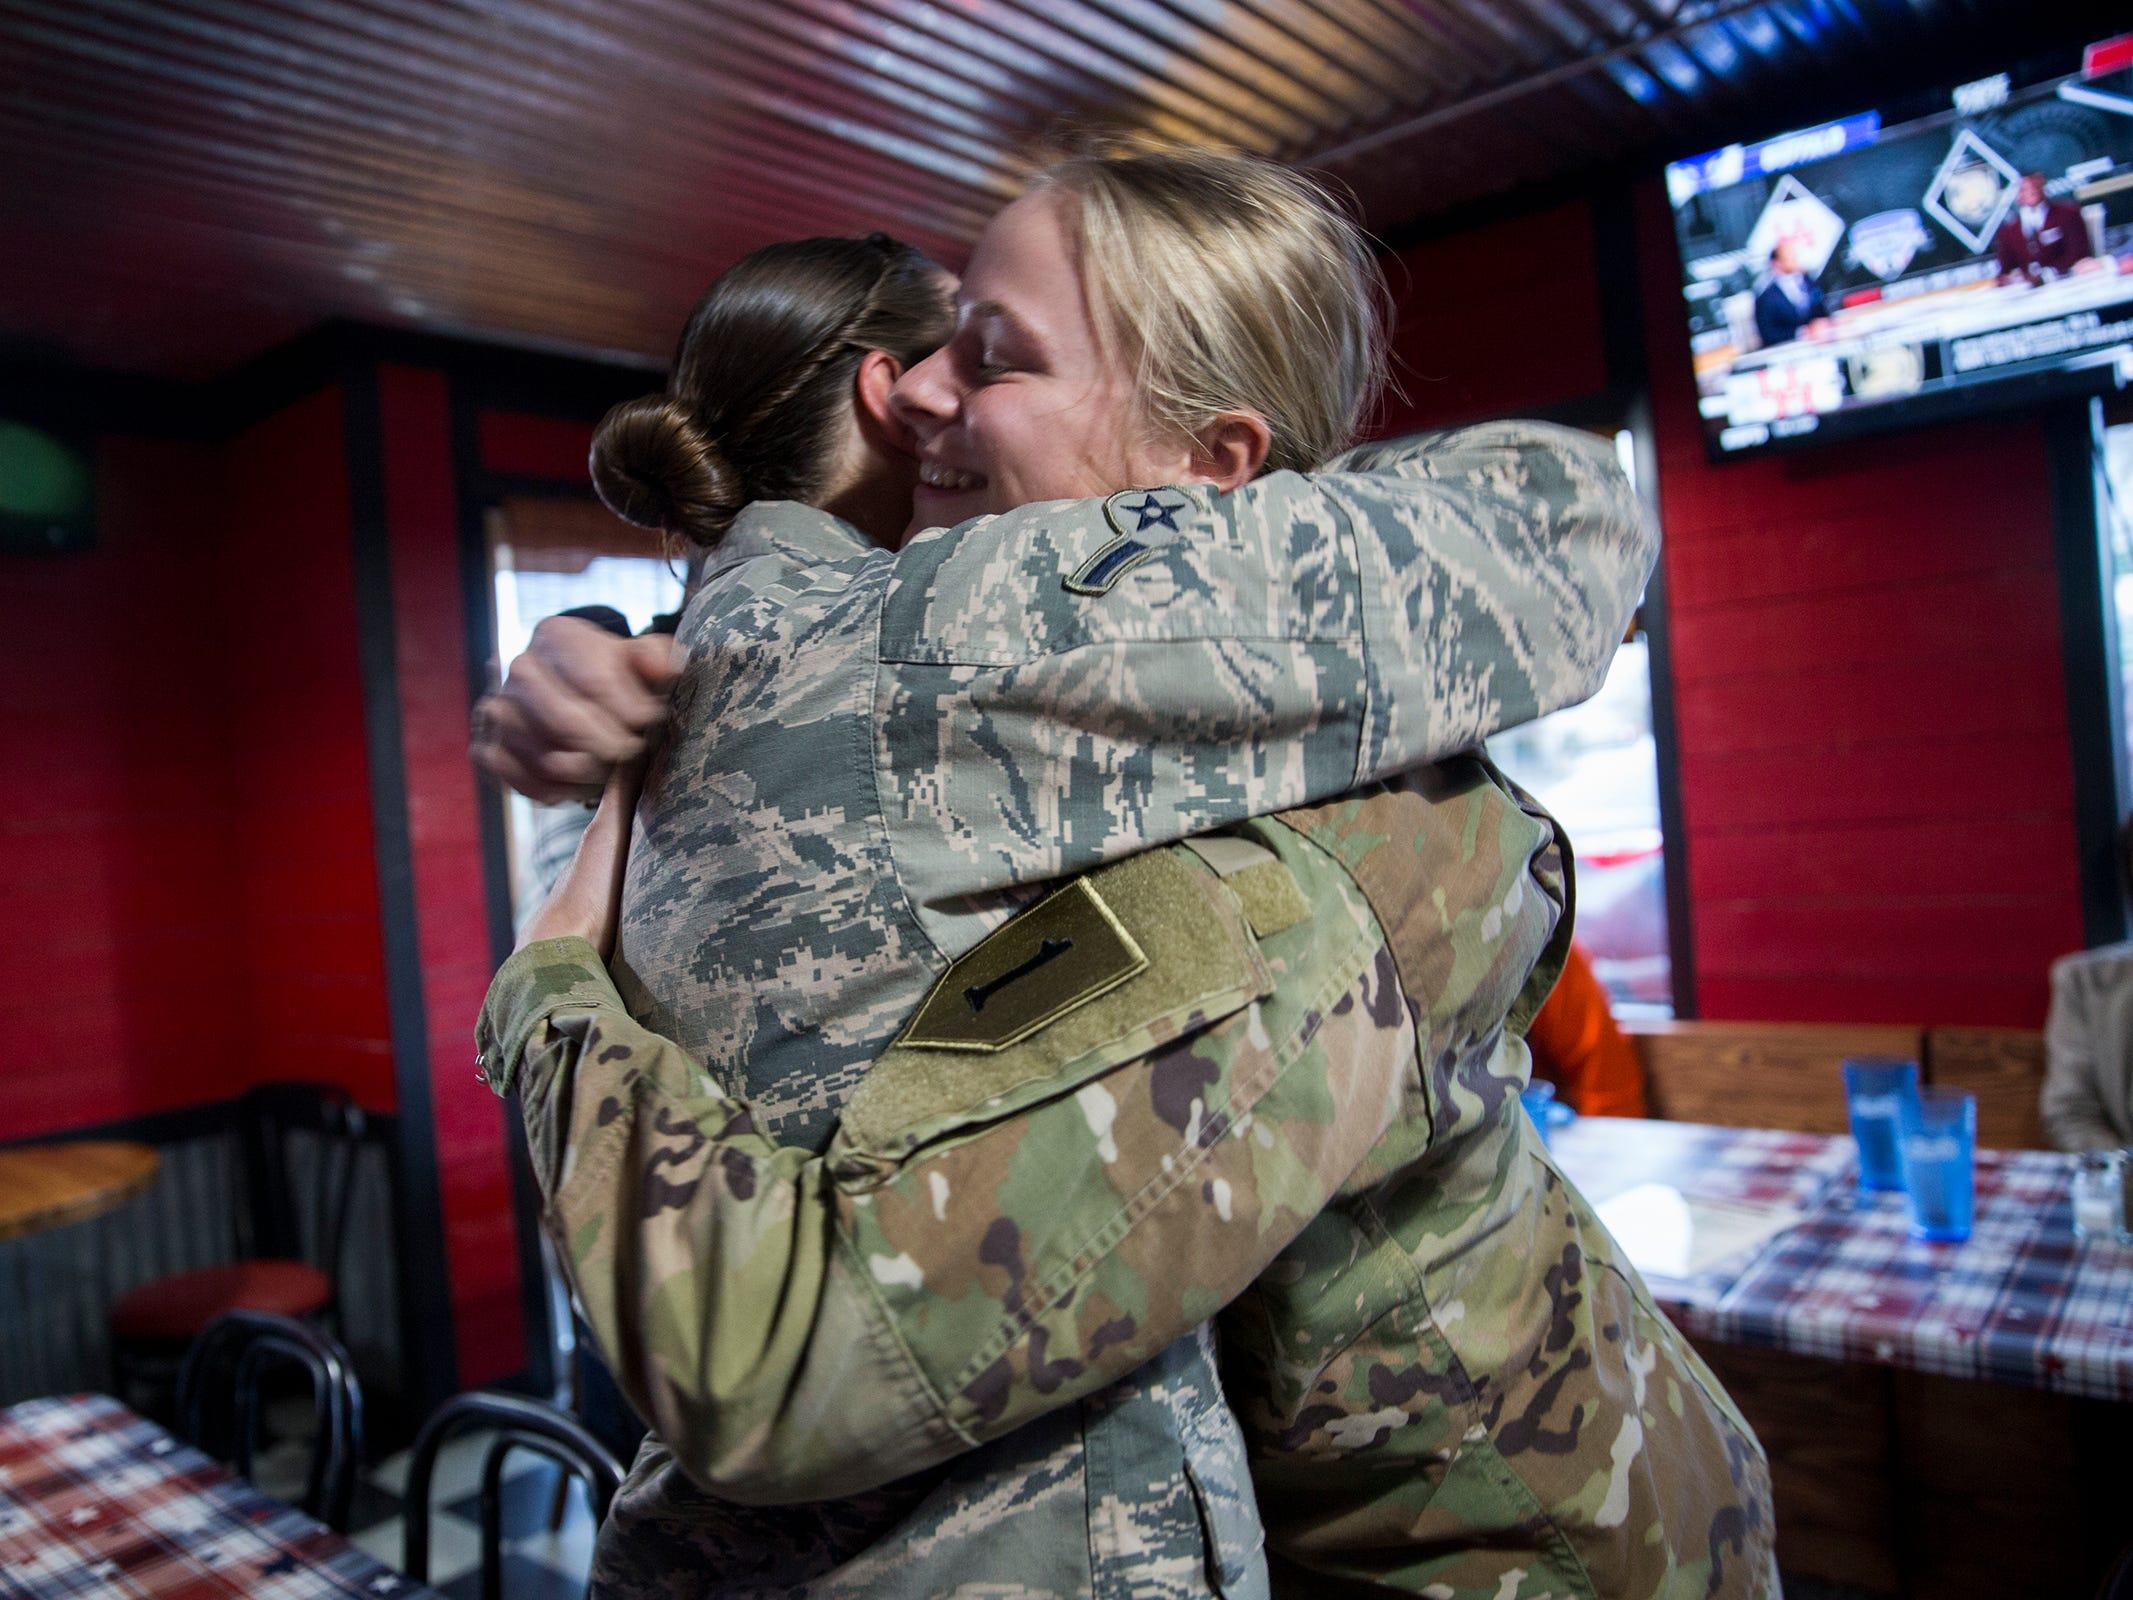 Courtney Lorraine hugs her older sister Kelsey Lorraine at their family restaurant Squatchy's BBQ in Stayton on Saturday, Dec. 22, 2018.